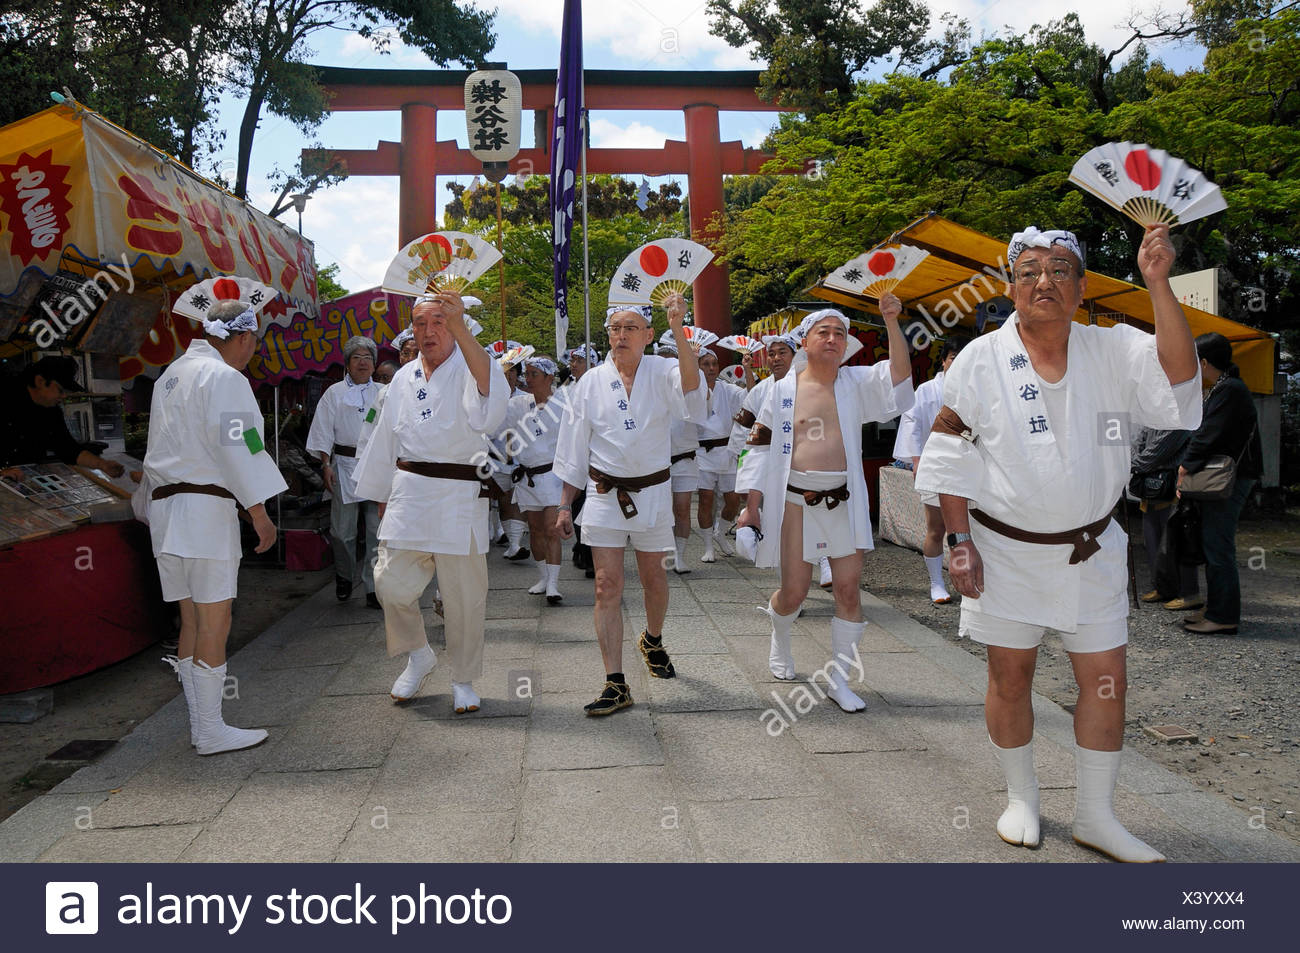 Handles of the shrines being carried accompanied by waving fans, Matsuri Shrine Festival of the Matsuo Taisha Shrine, Shinto Stock Photo